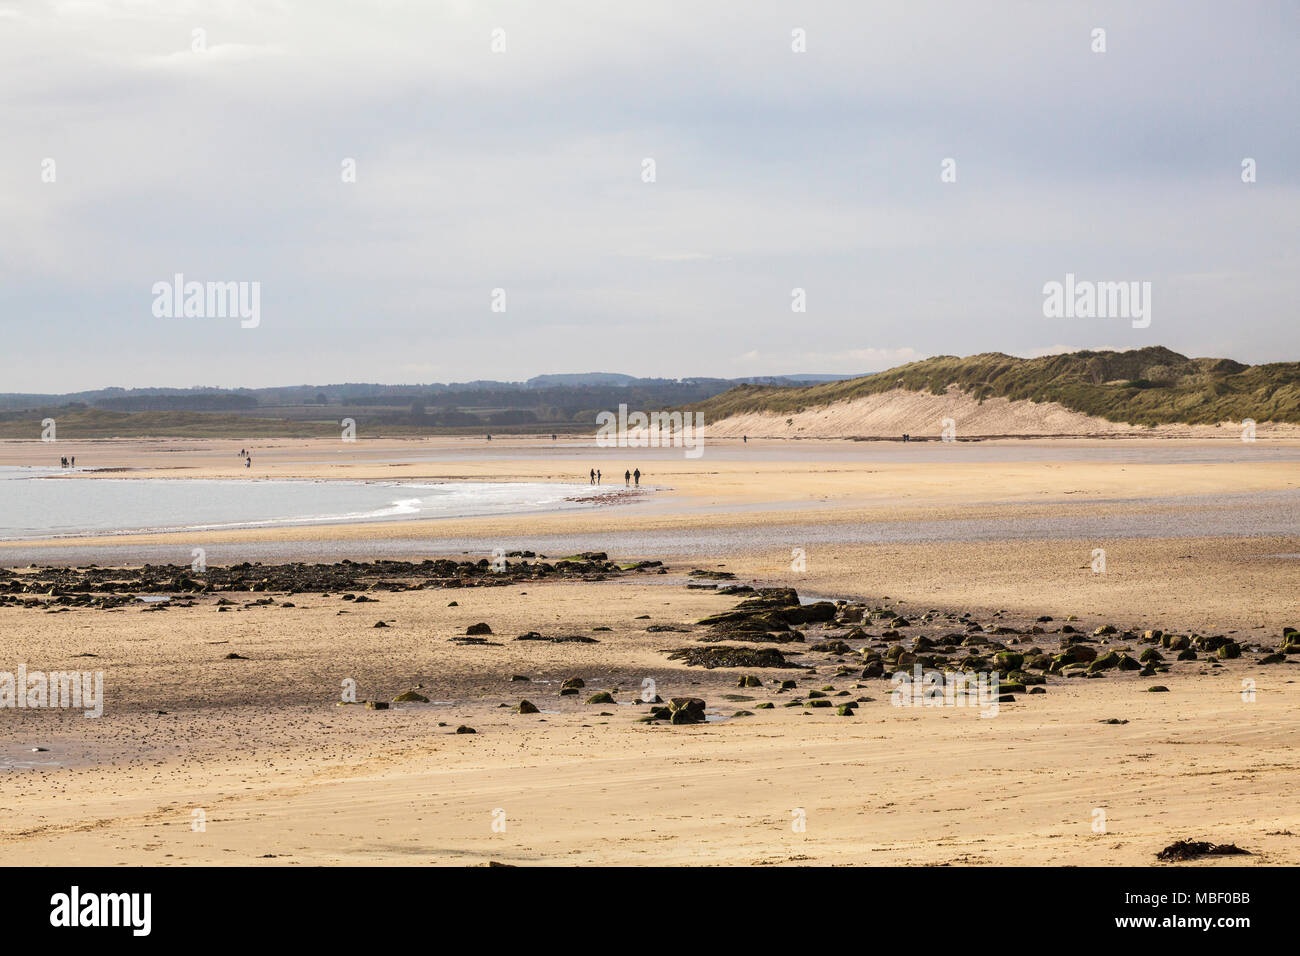 Bamburgh Beach looking towards Seahouses along the Northumberland Coast in Engand UK - Stock Image